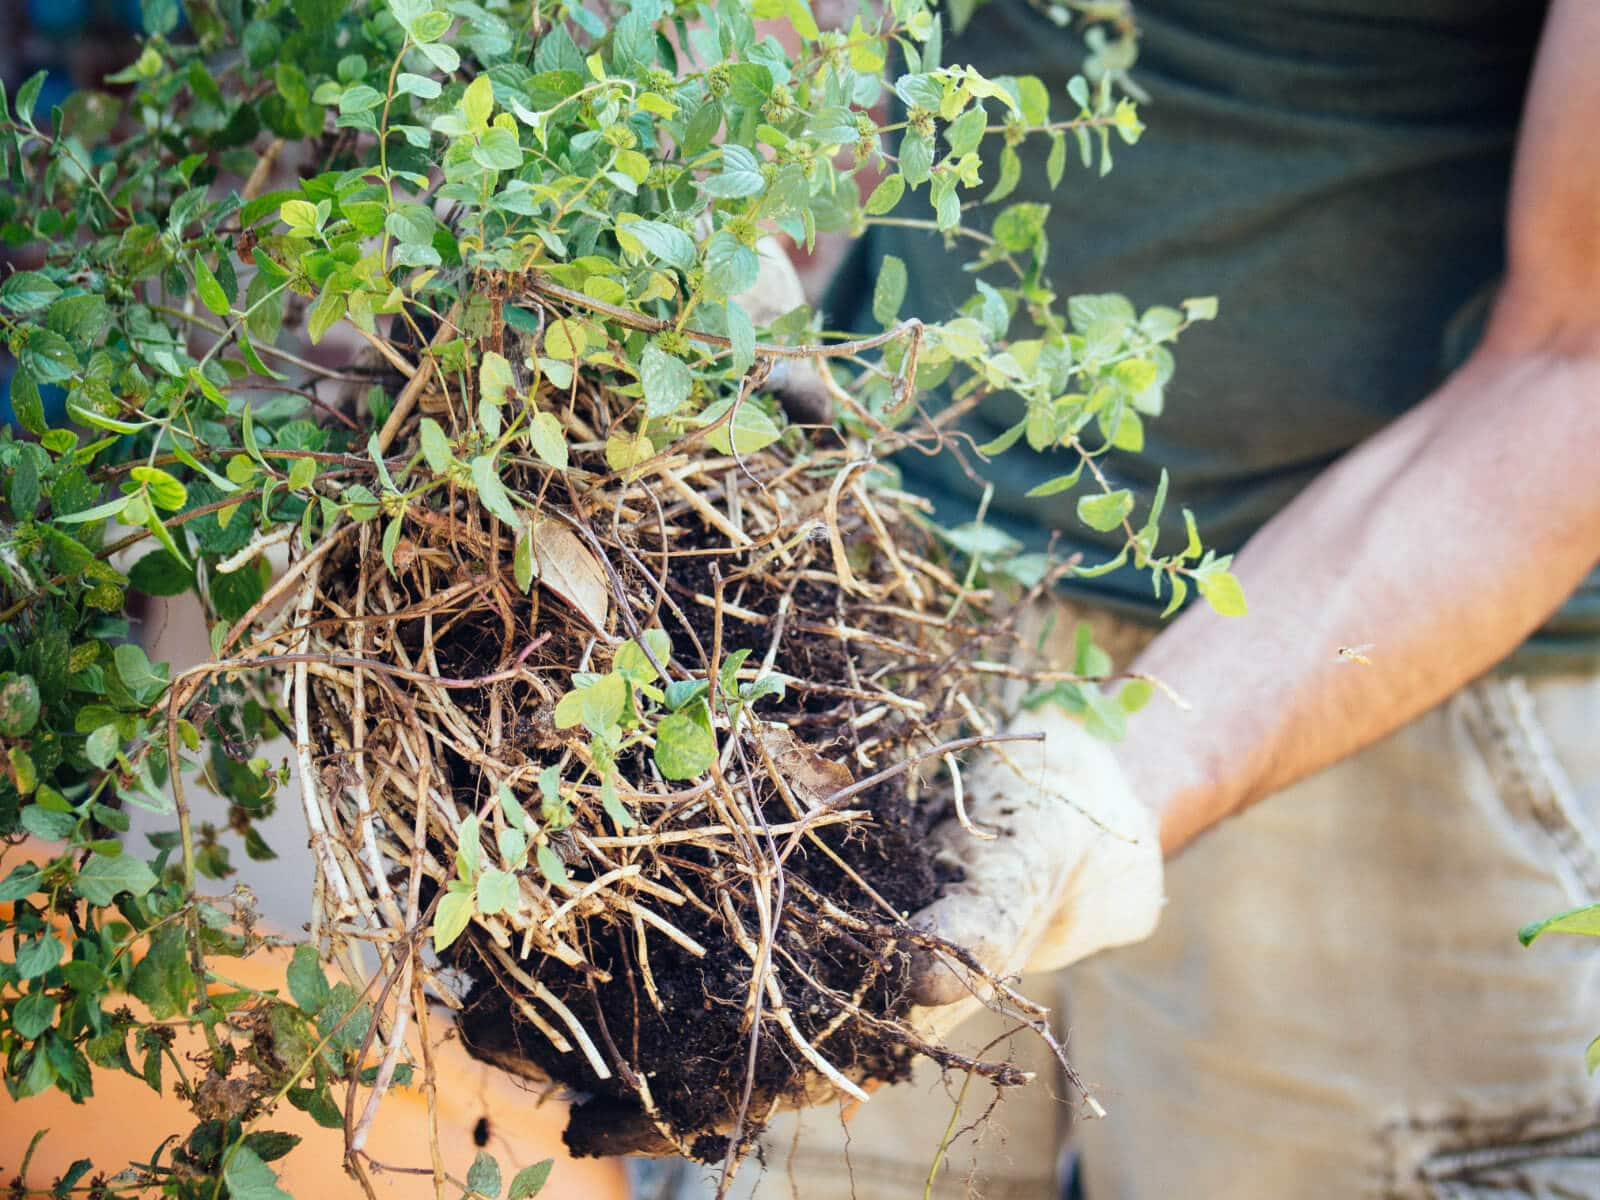 Mint is a shallow-rooted plant